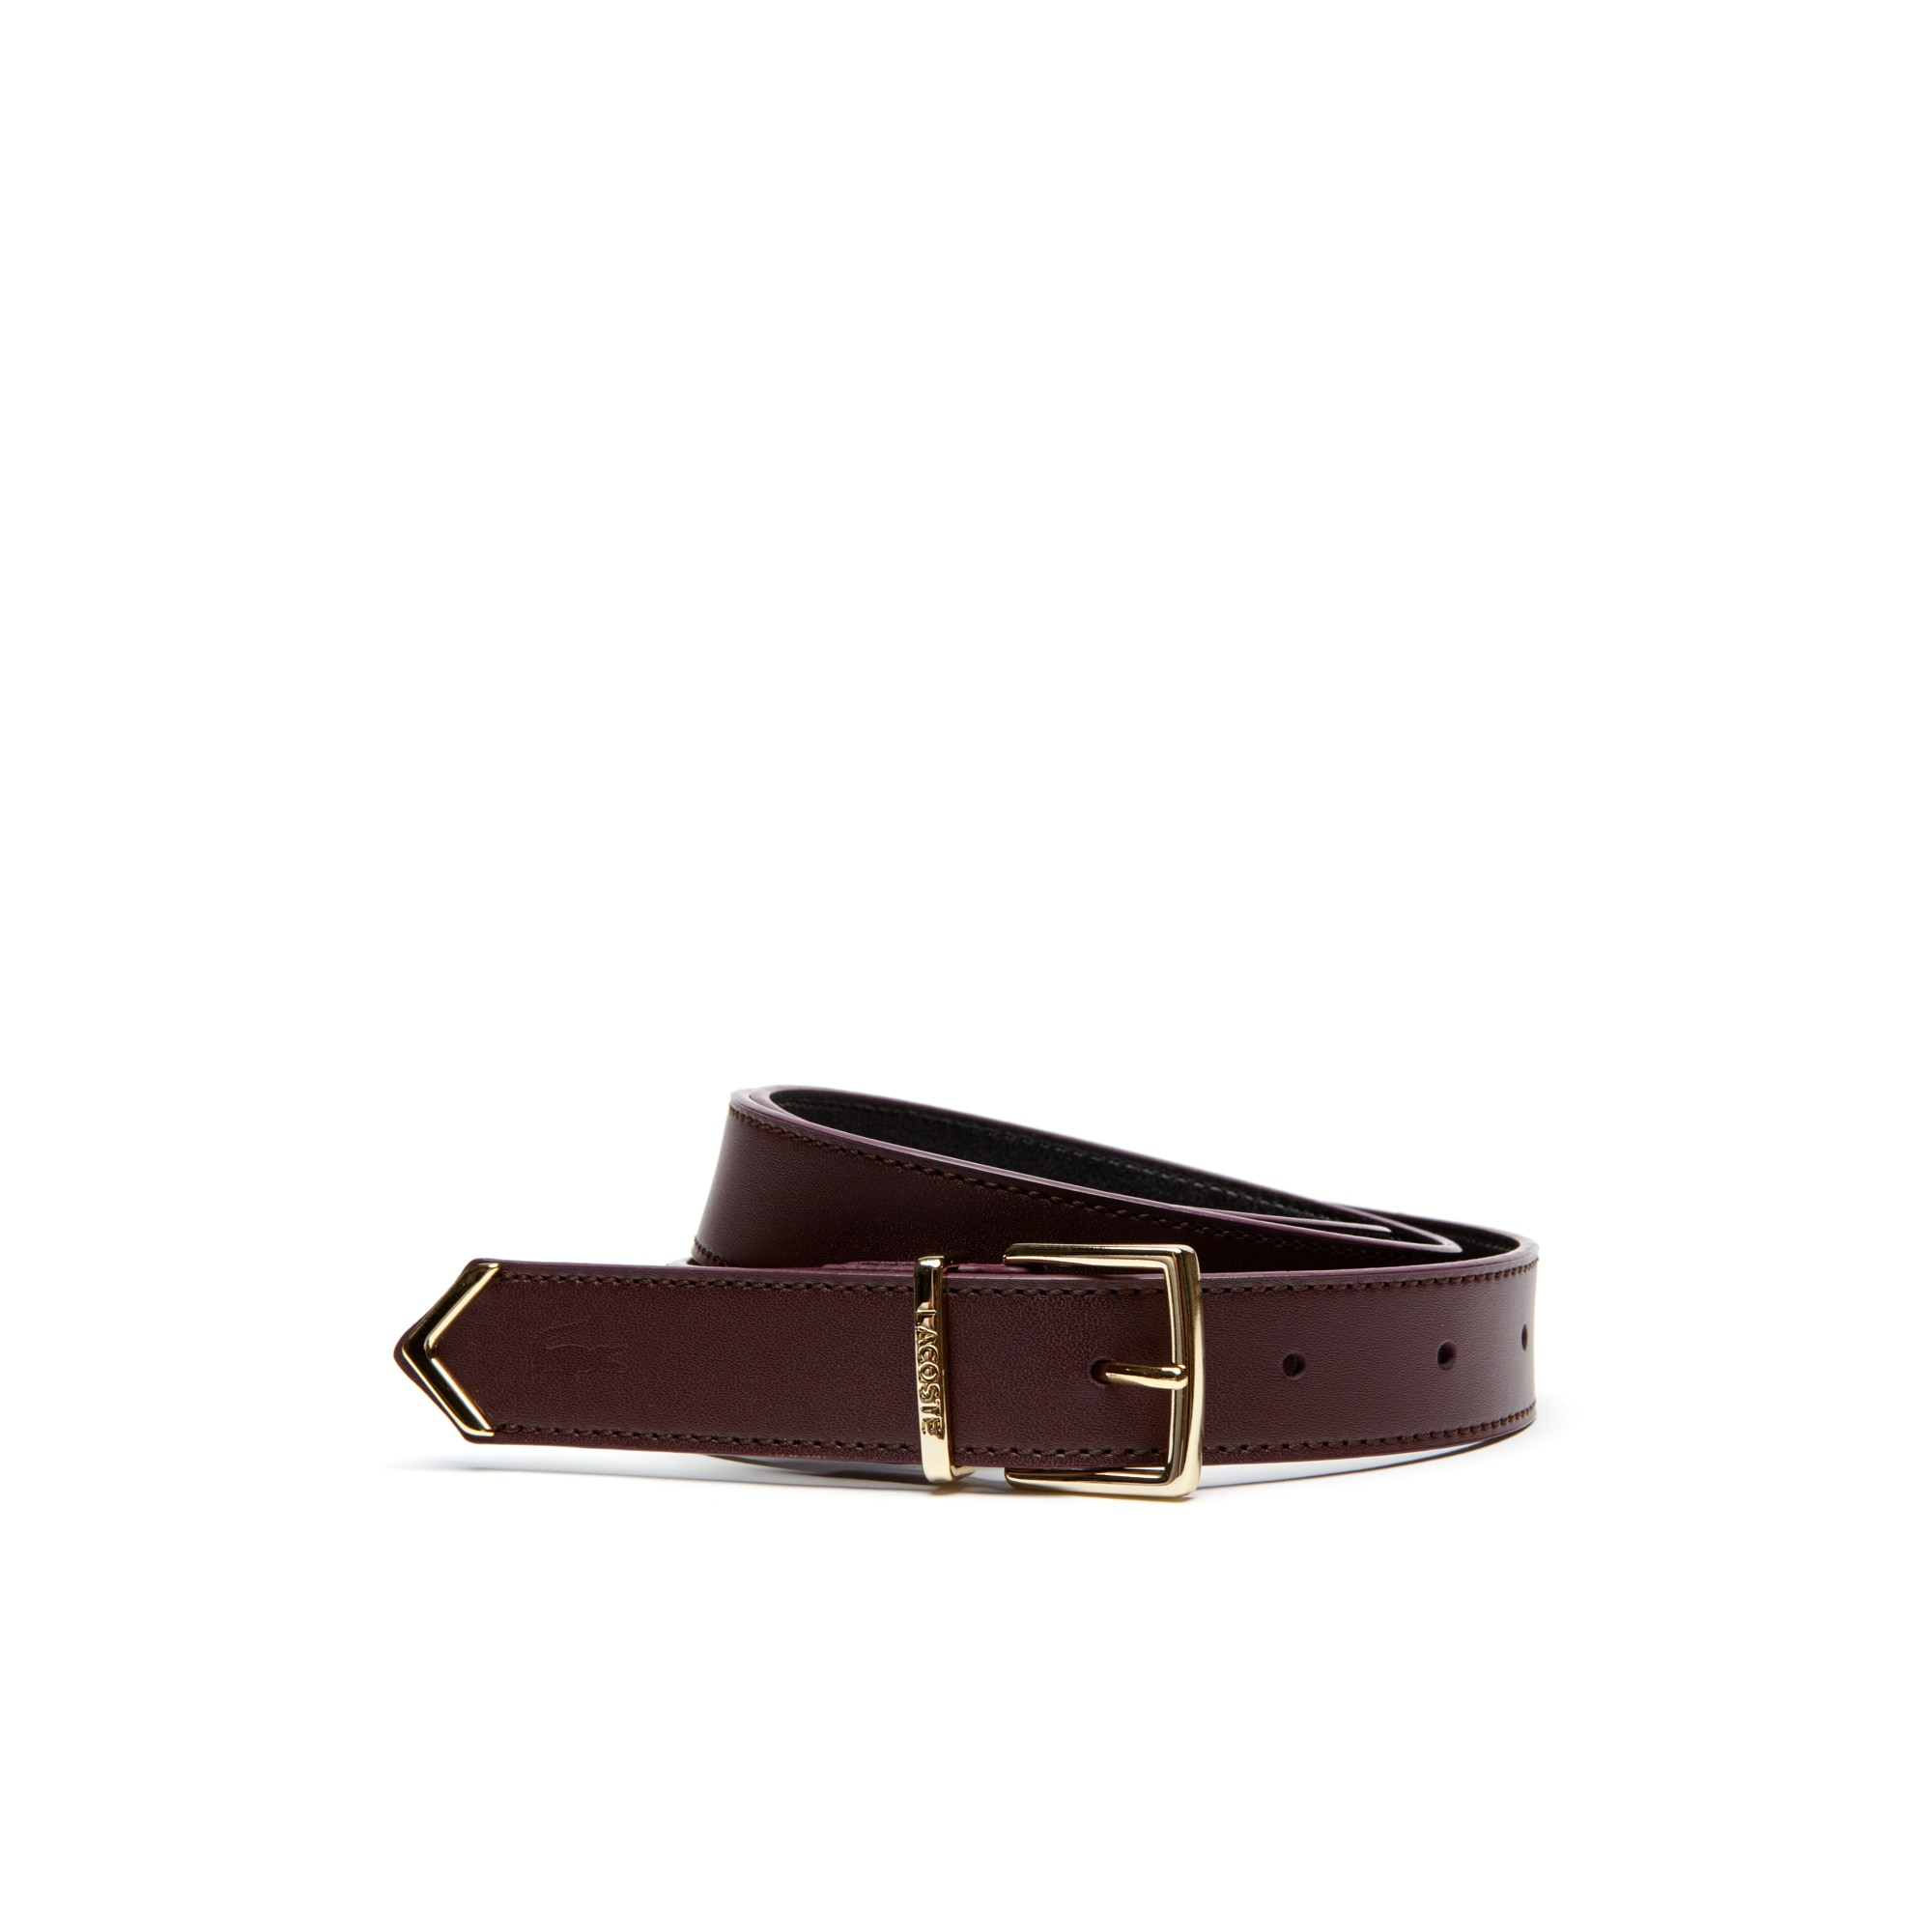 Women's Smooth Leather Belt With Lacoste Engraved Loop